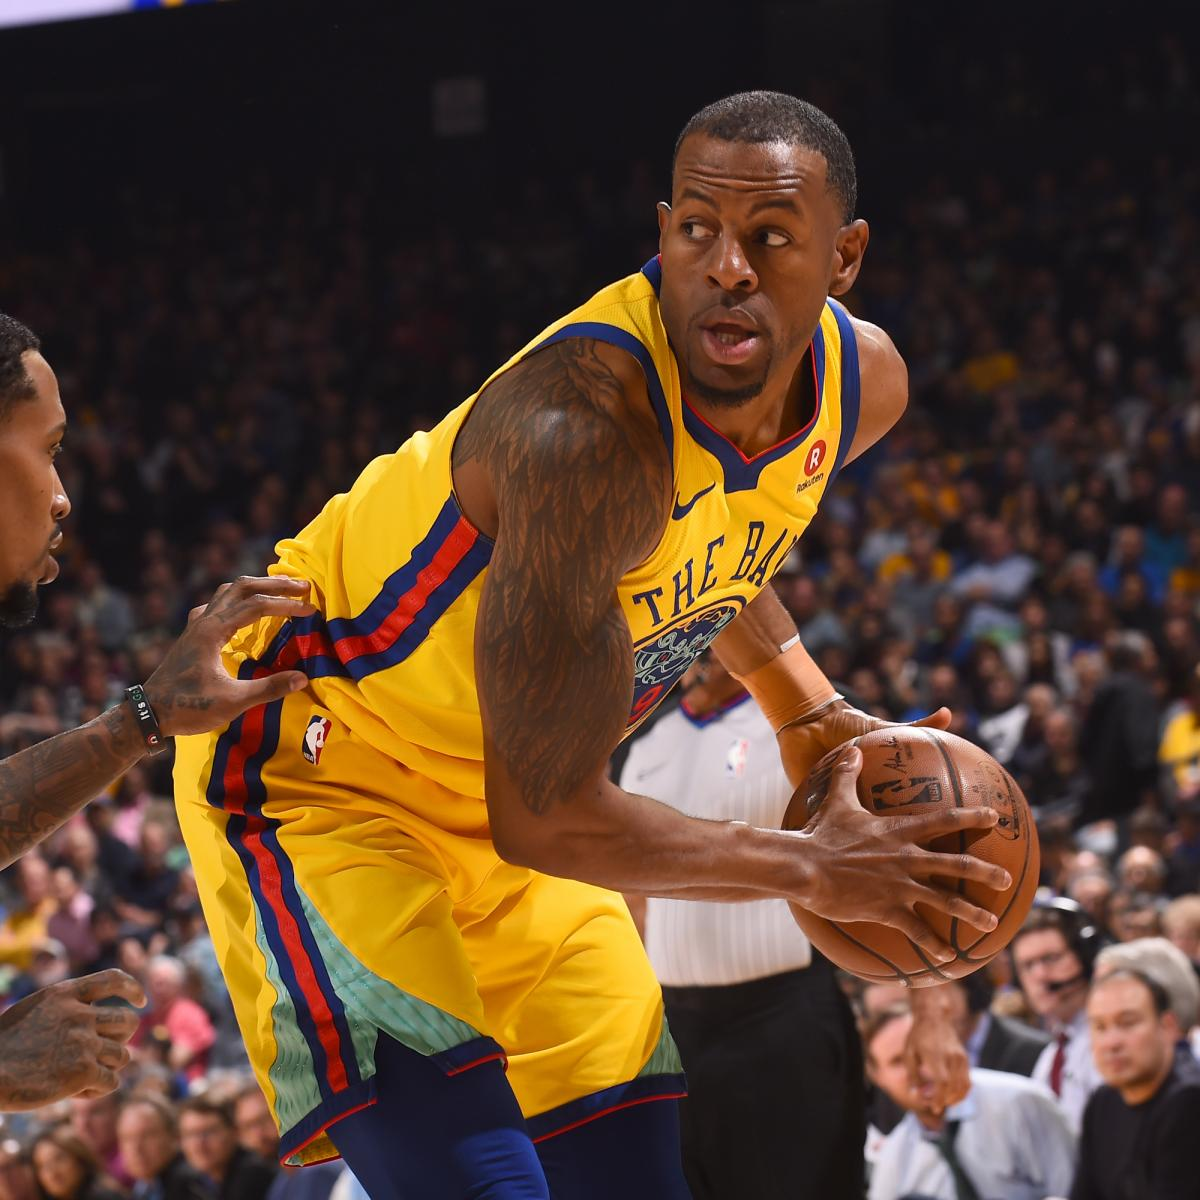 Andre Iguodala to Start at PG in Game 1 of Warriors-Spurs with Stephen Curry Out